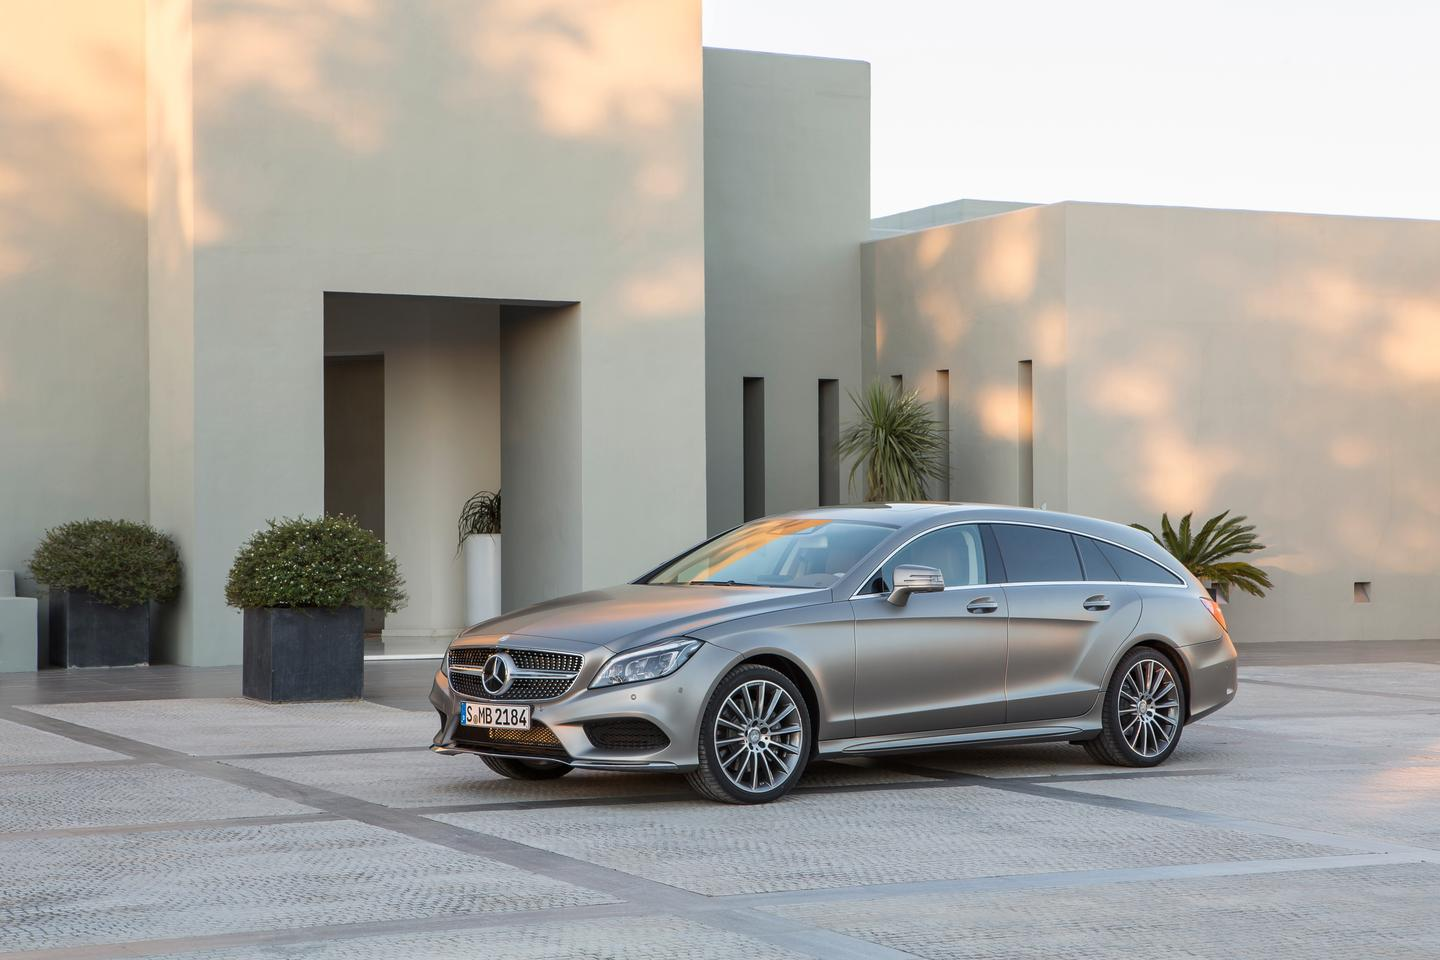 The Mercedes CLS Shooting Brake